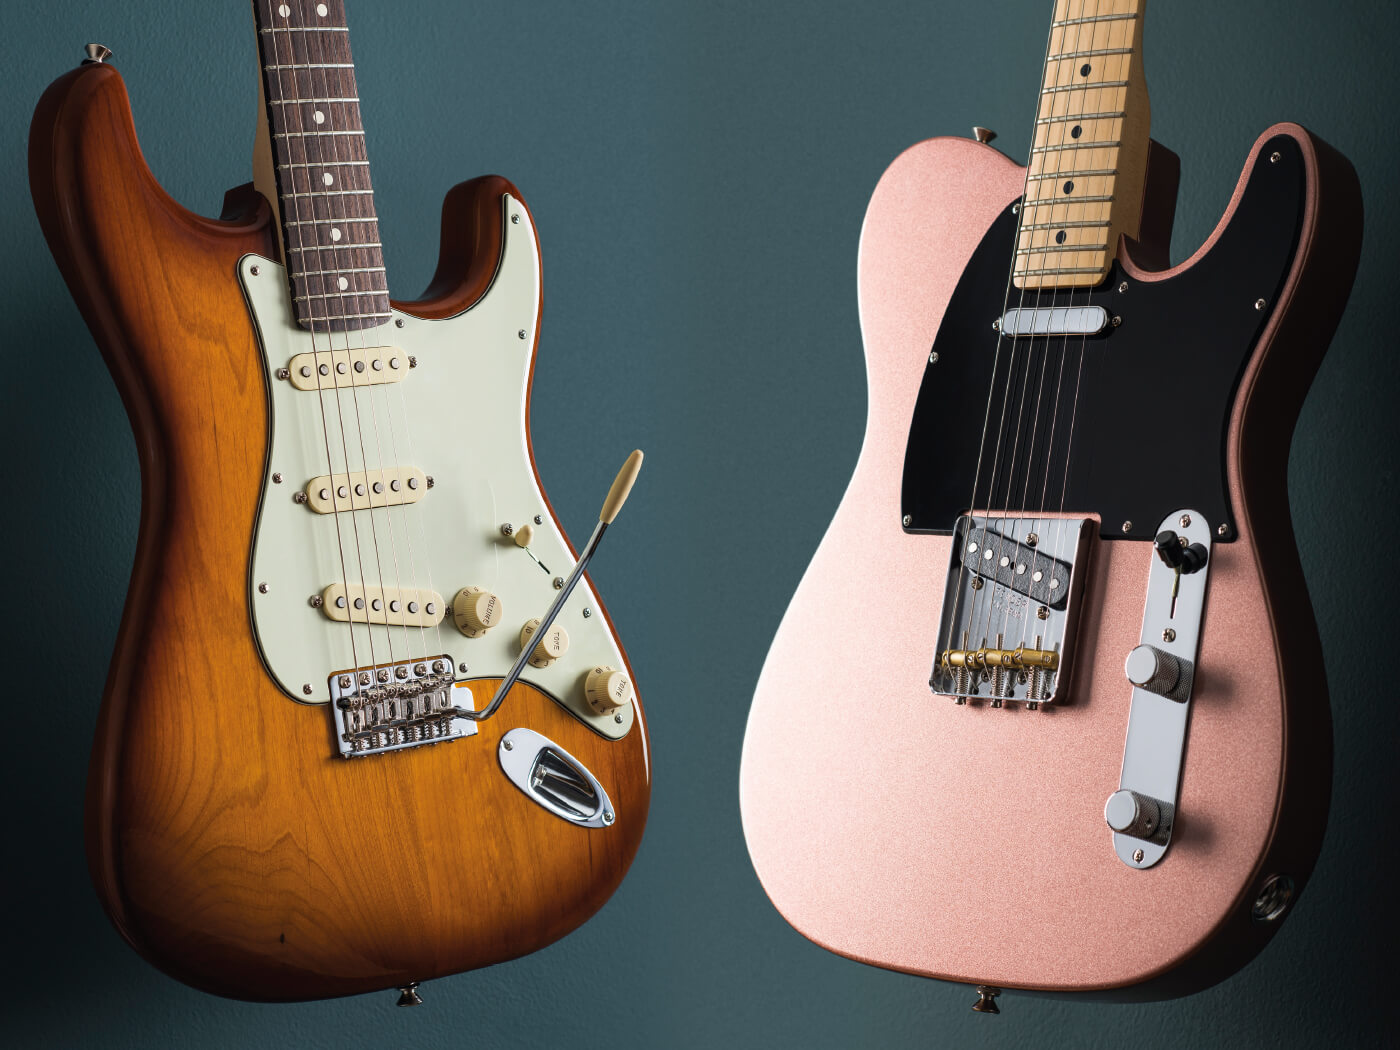 hight resolution of fender american perofrmer stratocaster and telecaster